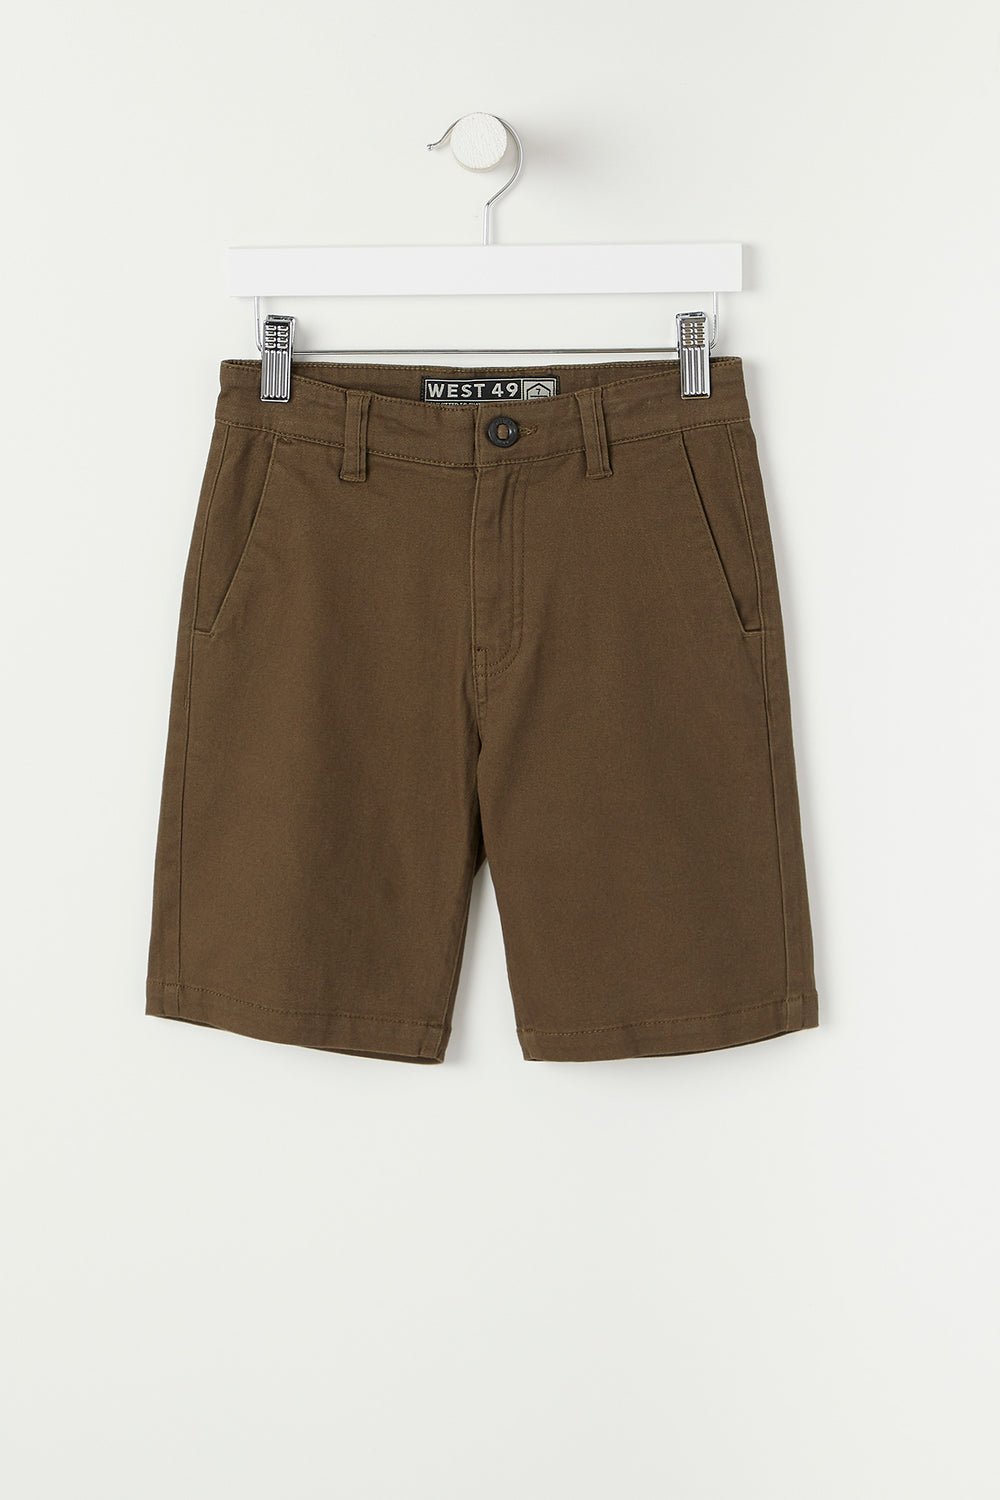 West49 Youth Twill Street Short Khaki